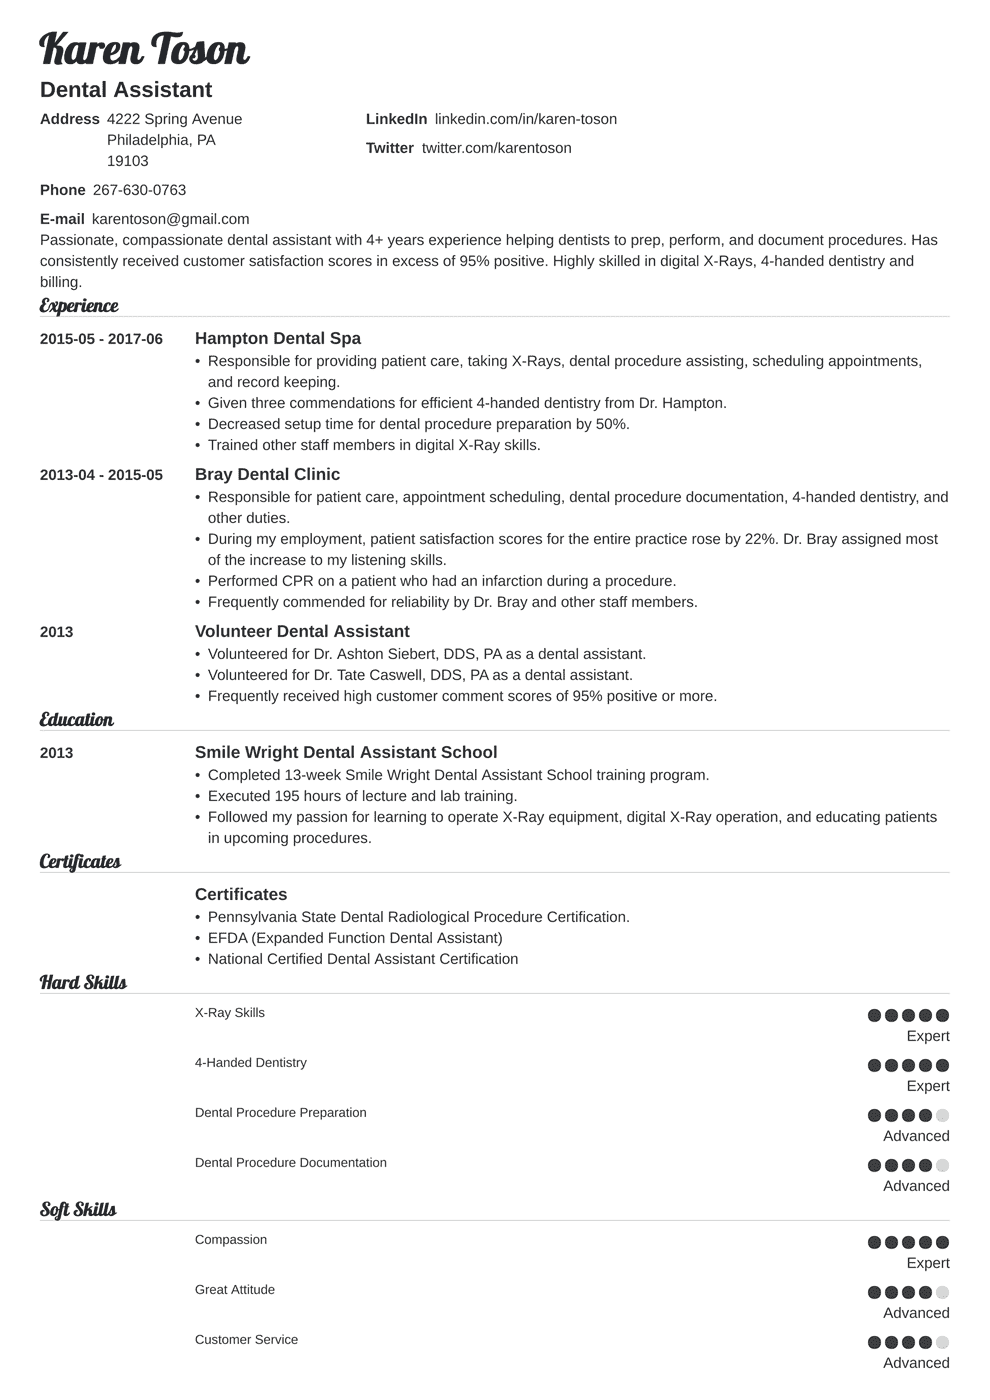 37++ Dental assistant resume 2020 ideas in 2021